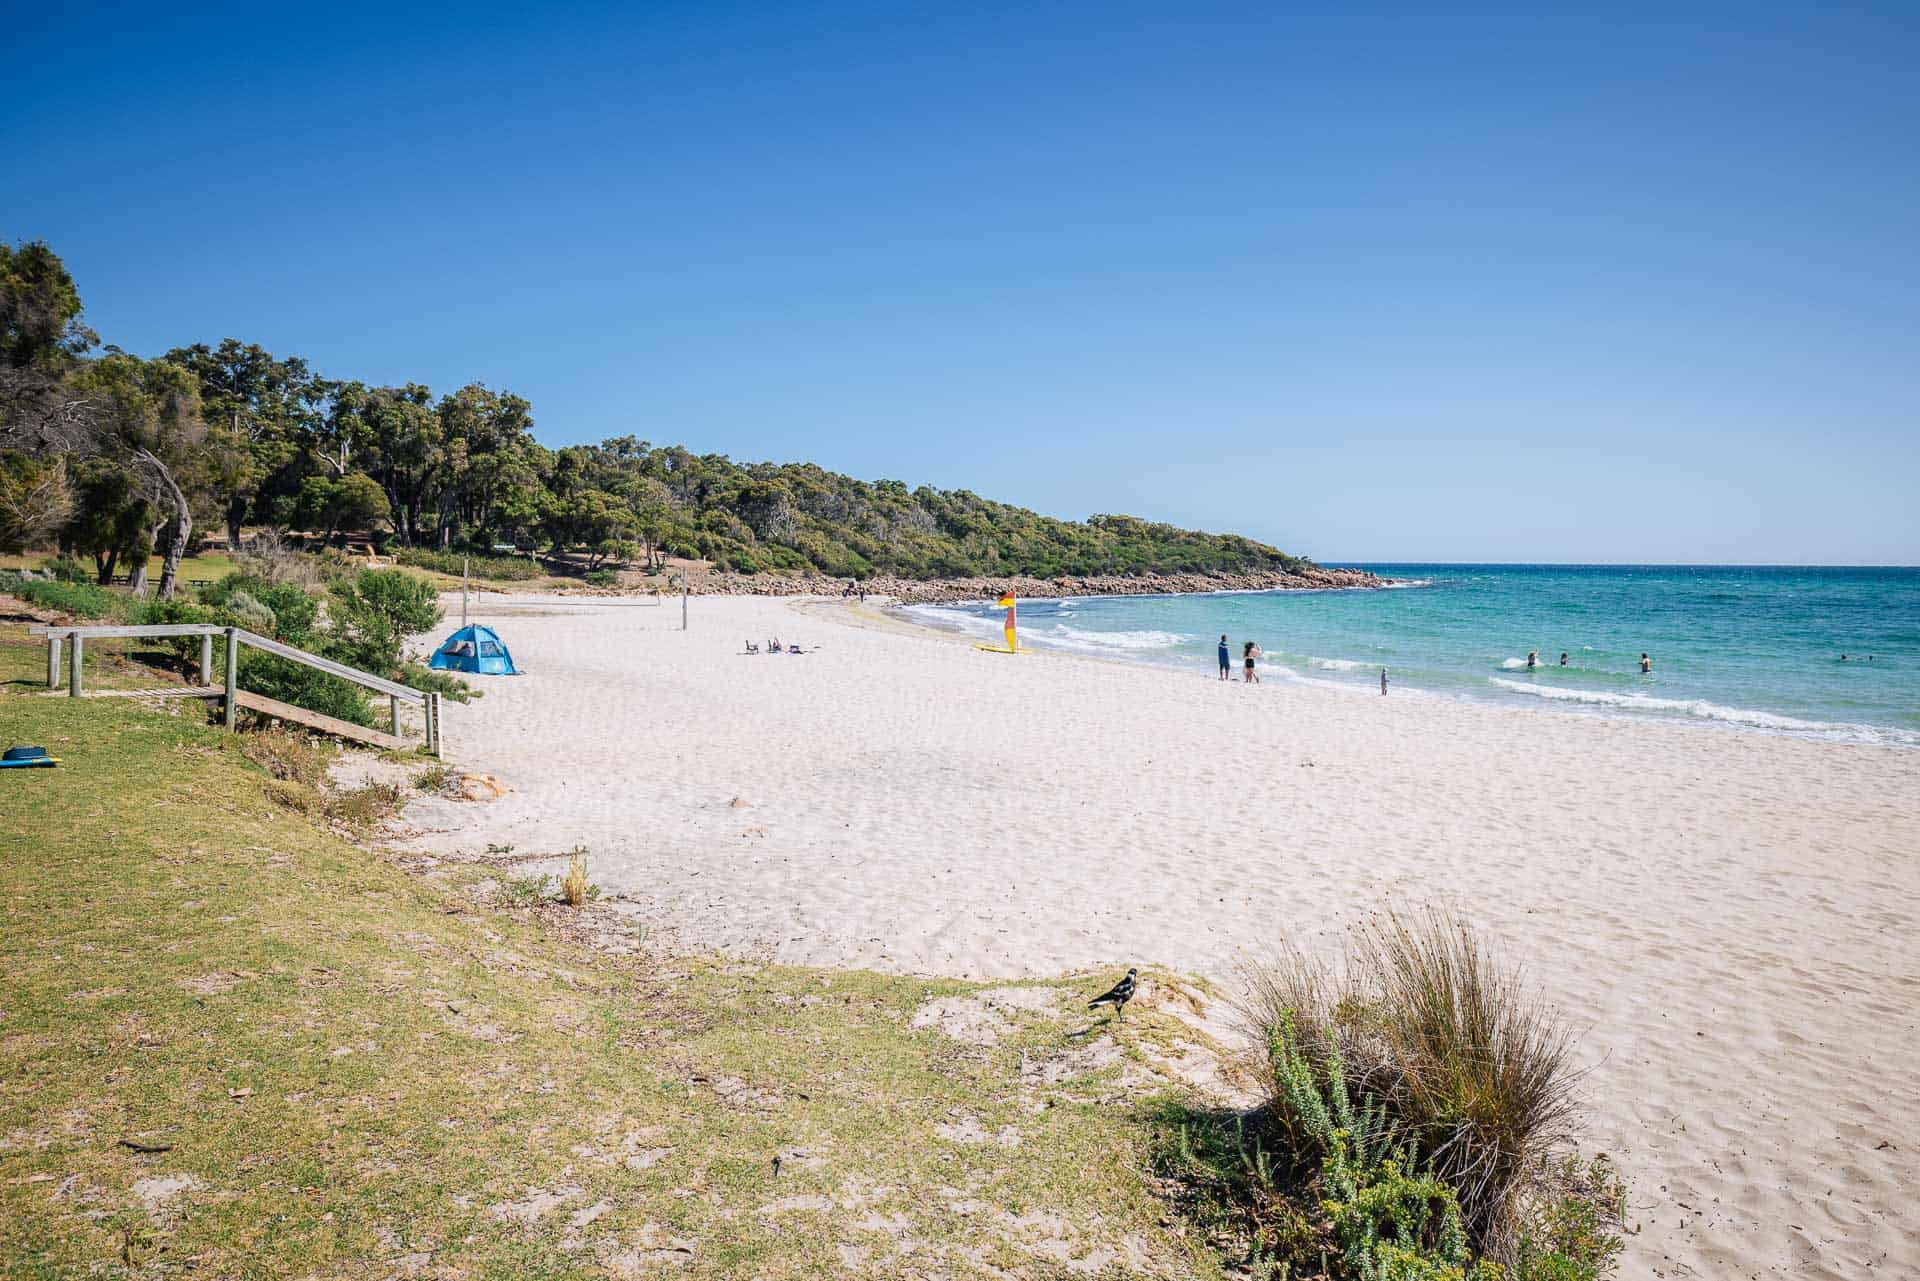 things to do in margaret river, what to do in margaret river, best things to do in margaret river, things to do margaret river, meelup beach